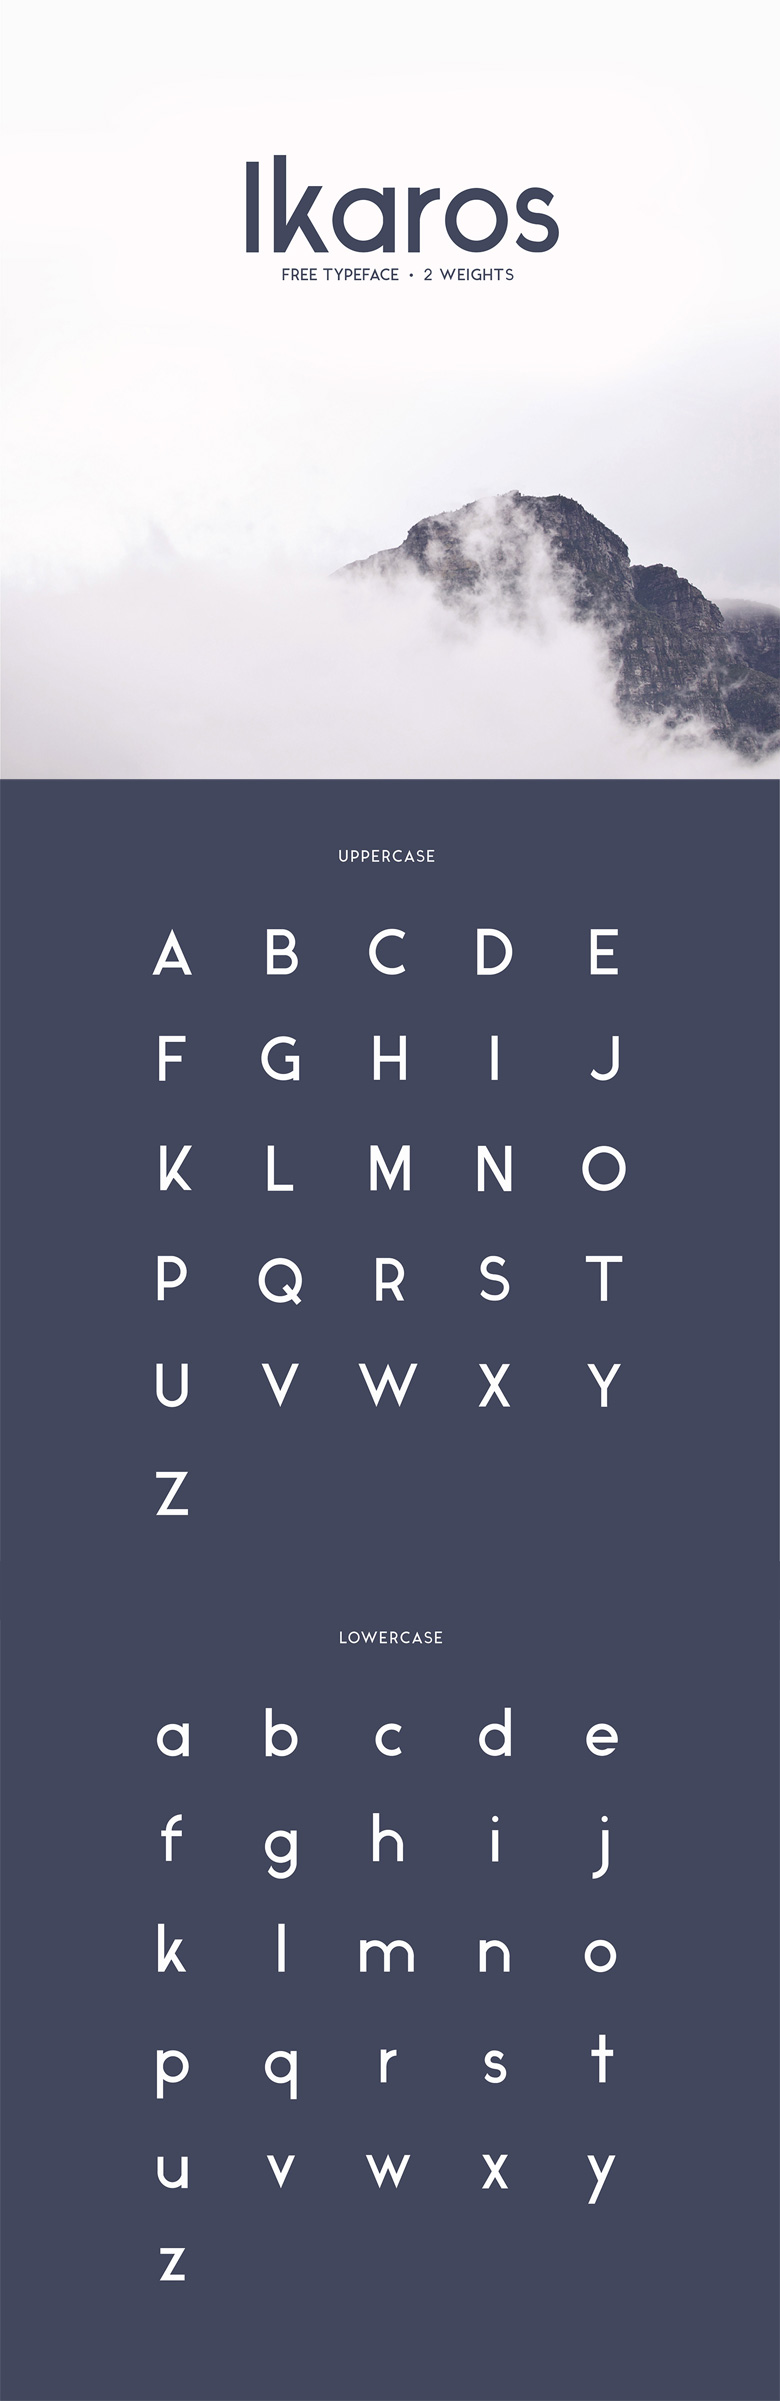 Beautiful free fonts for designers - Ikaros